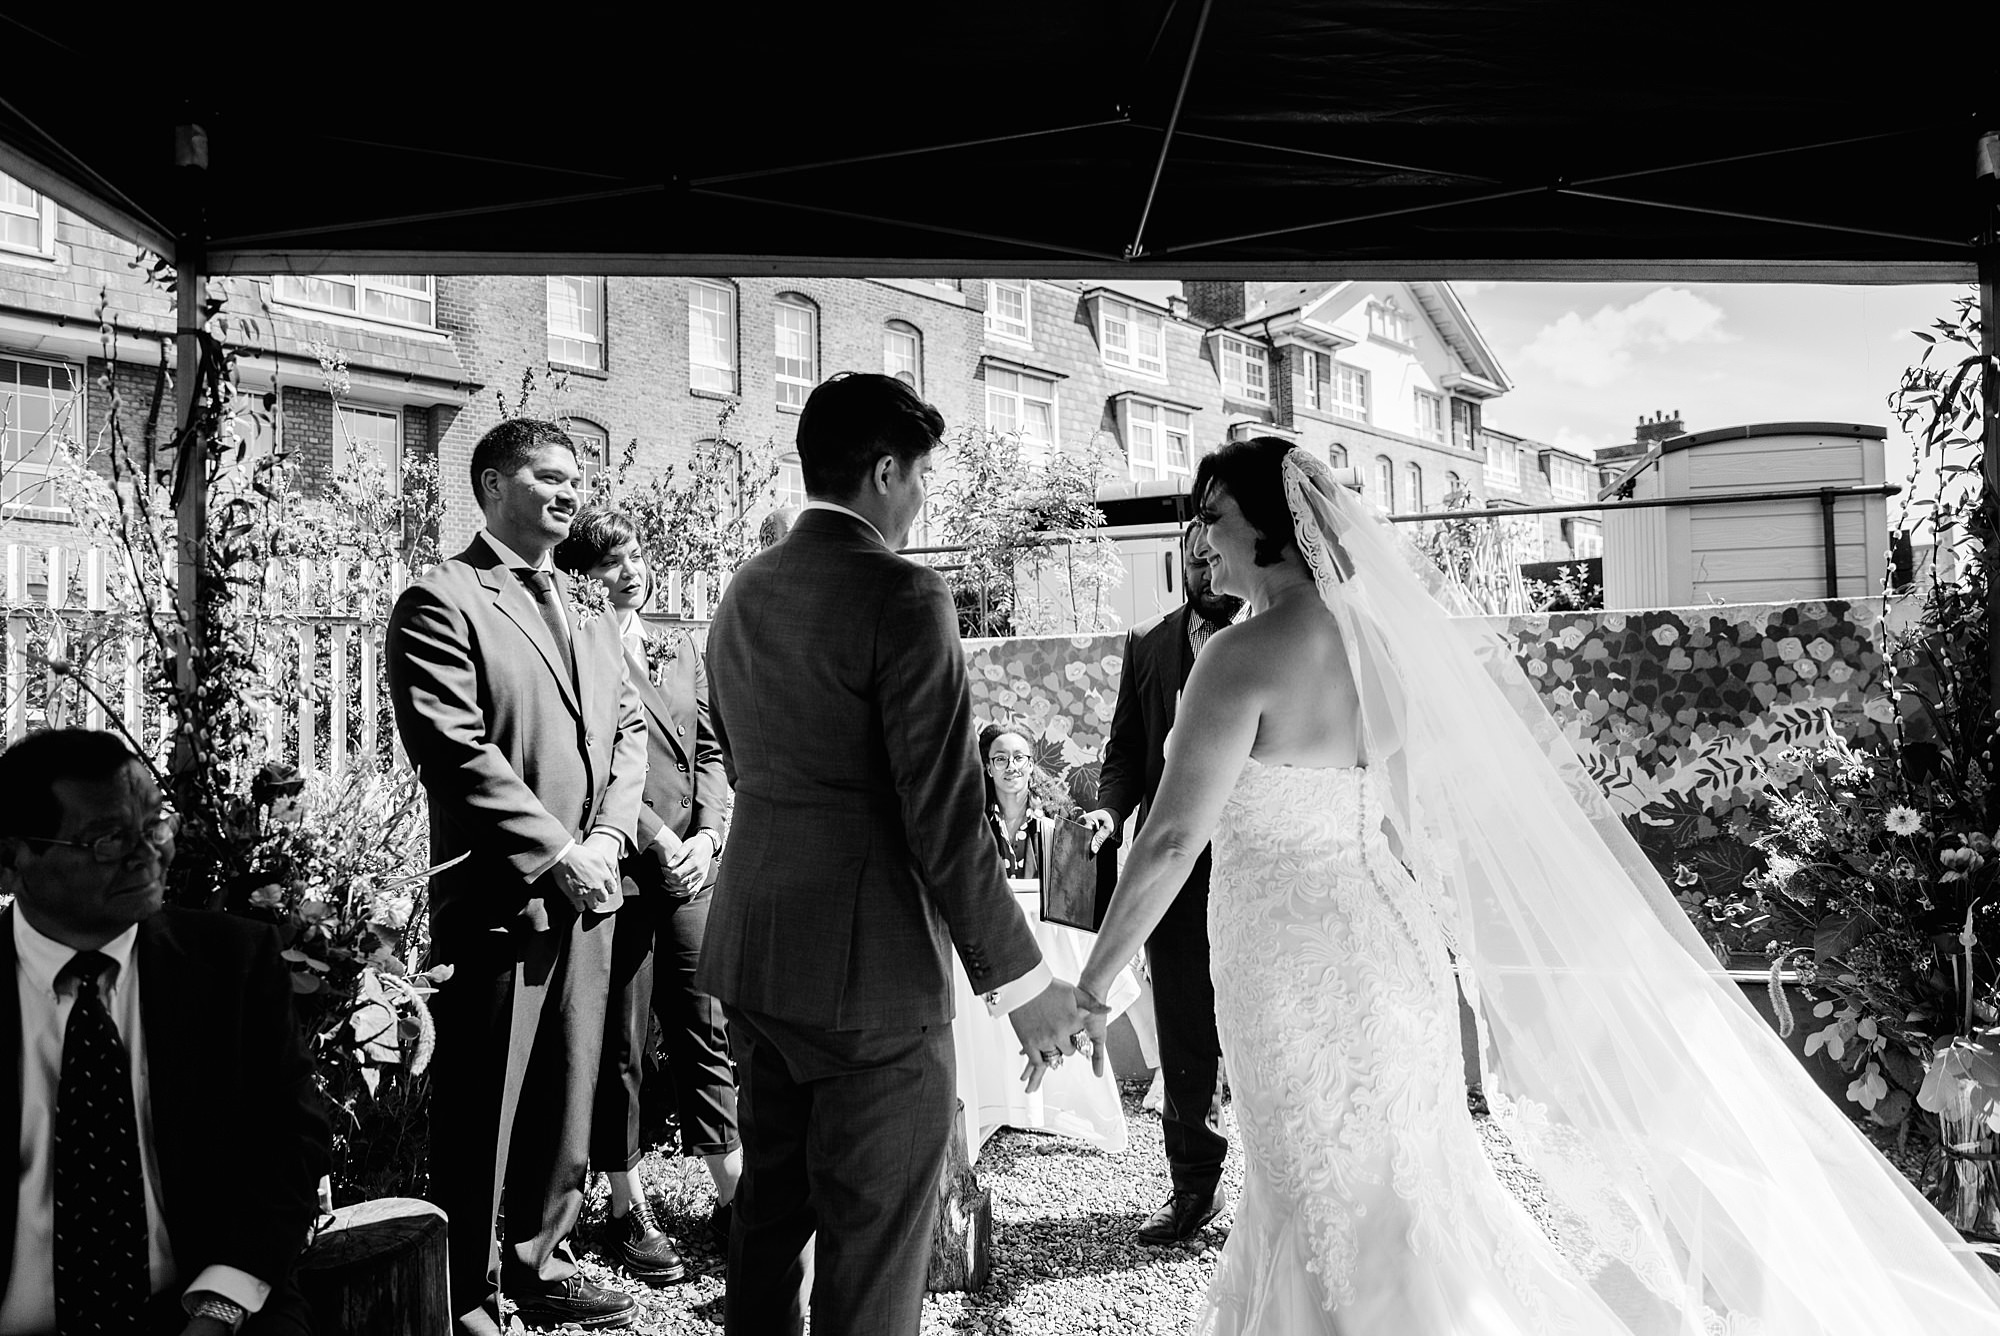 Brunel museum wedding bride greets groom at ceremony